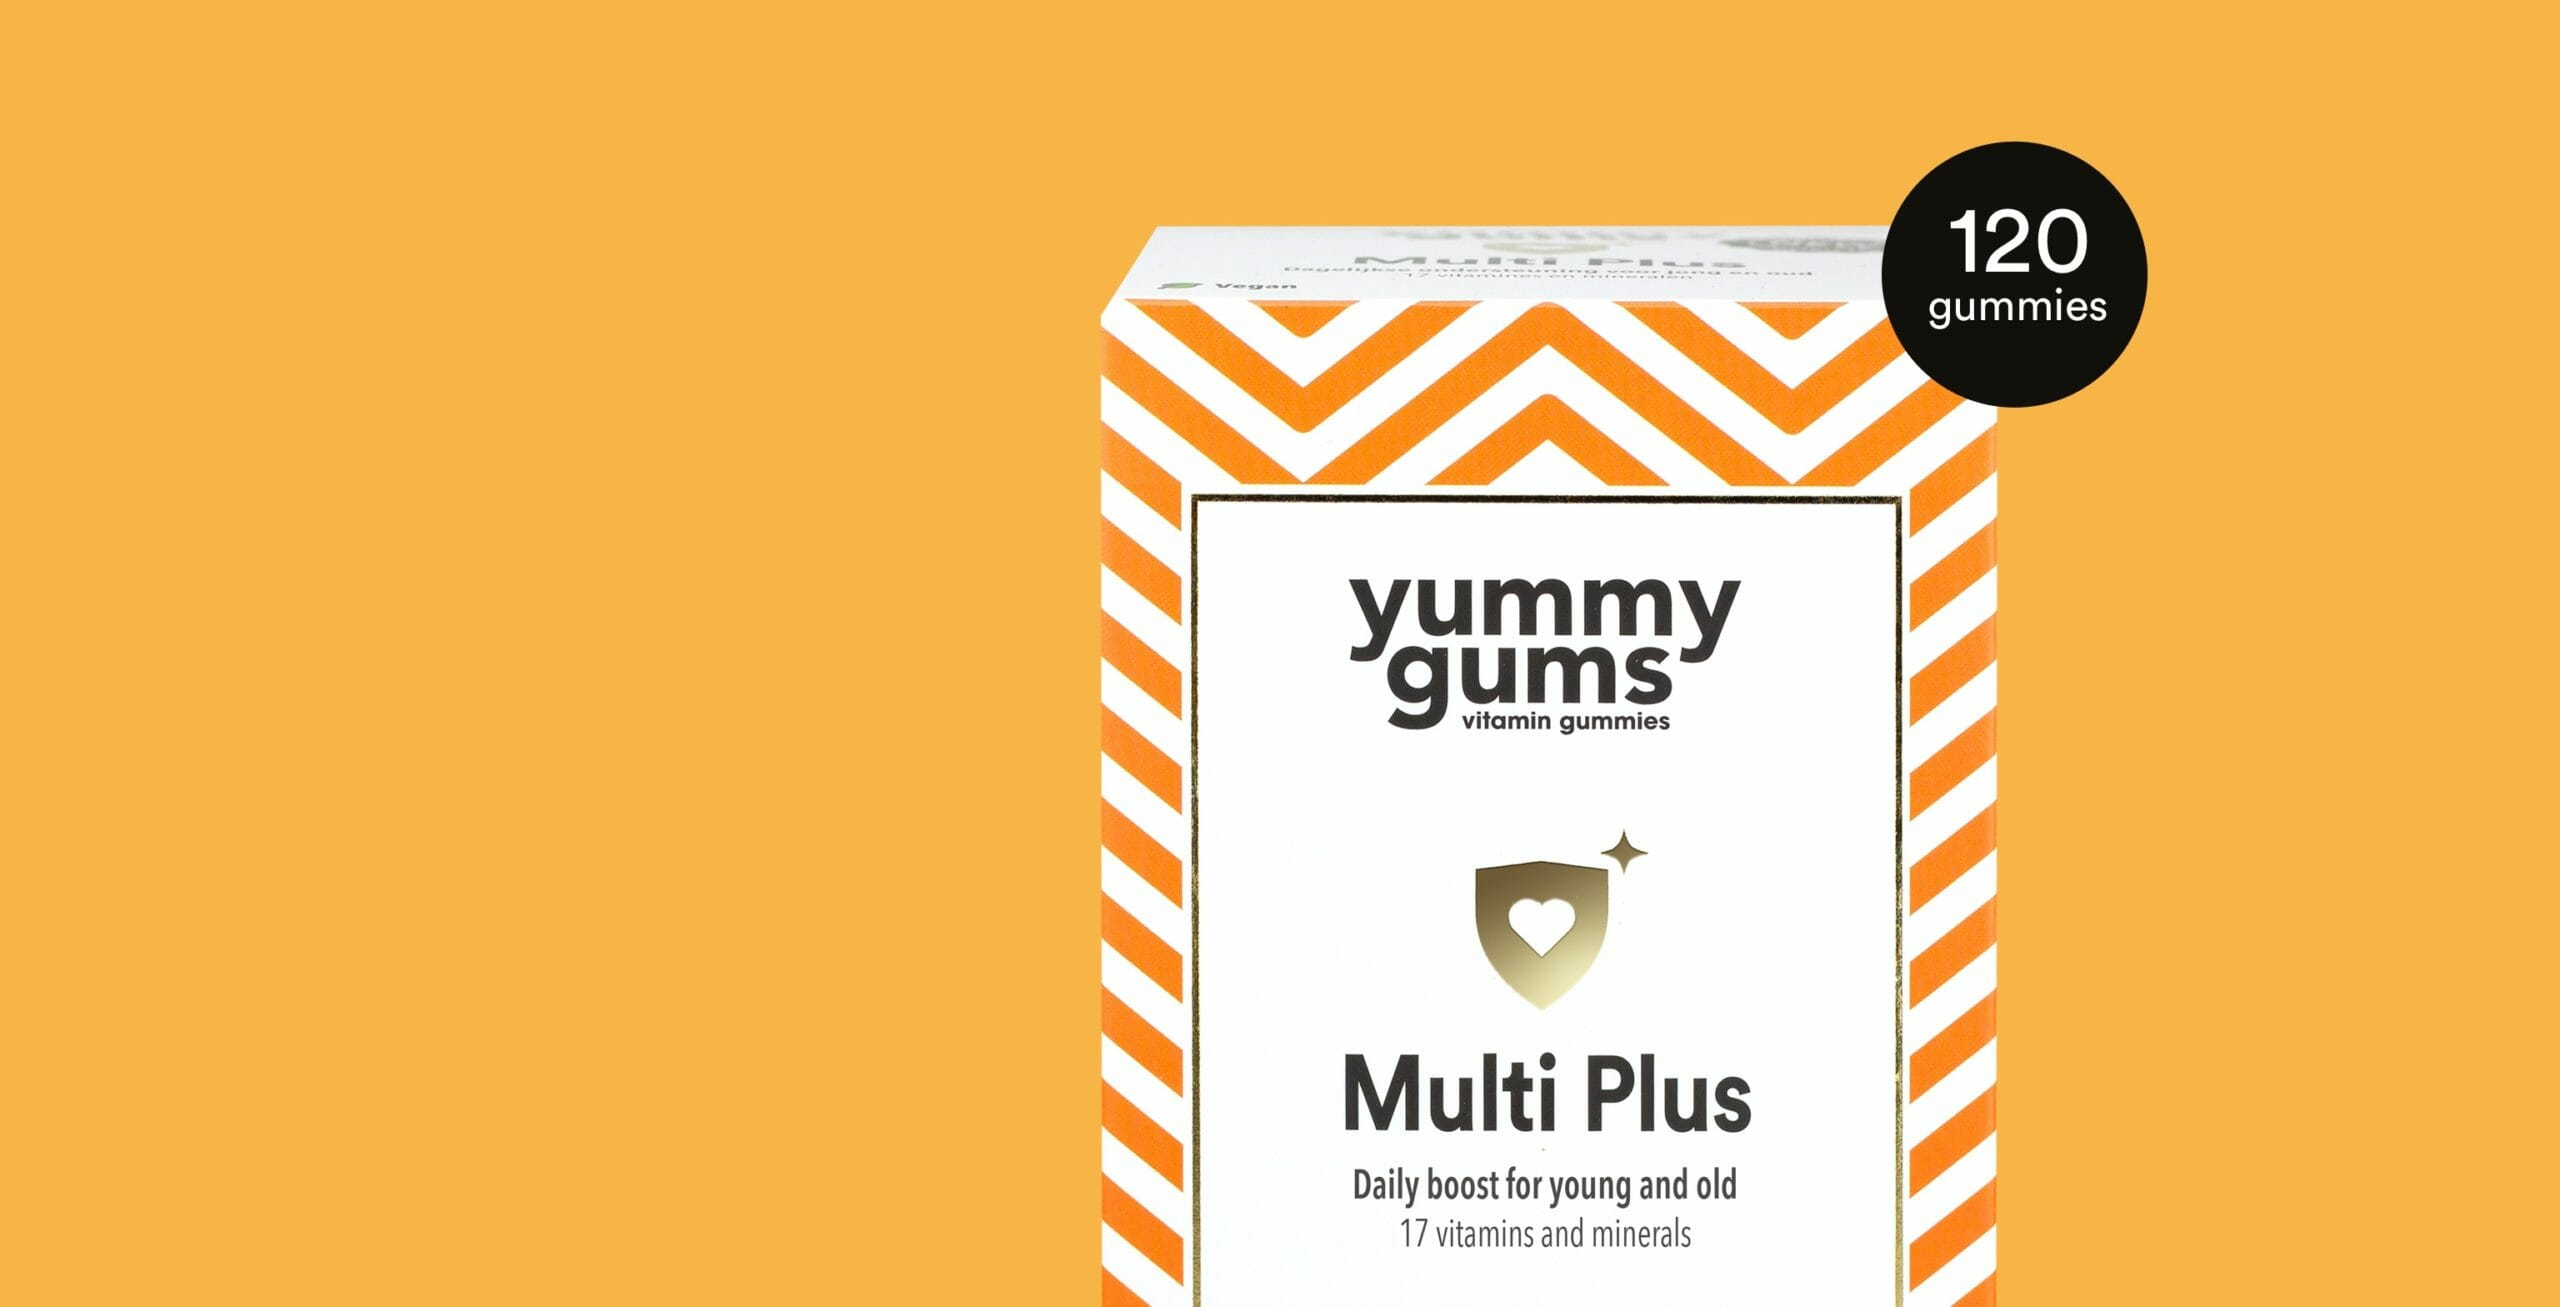 Try the Multi Plus as well - Daily vitamin boost for young and old with including 17 essential vitamins and minerals (also 100% vegan)